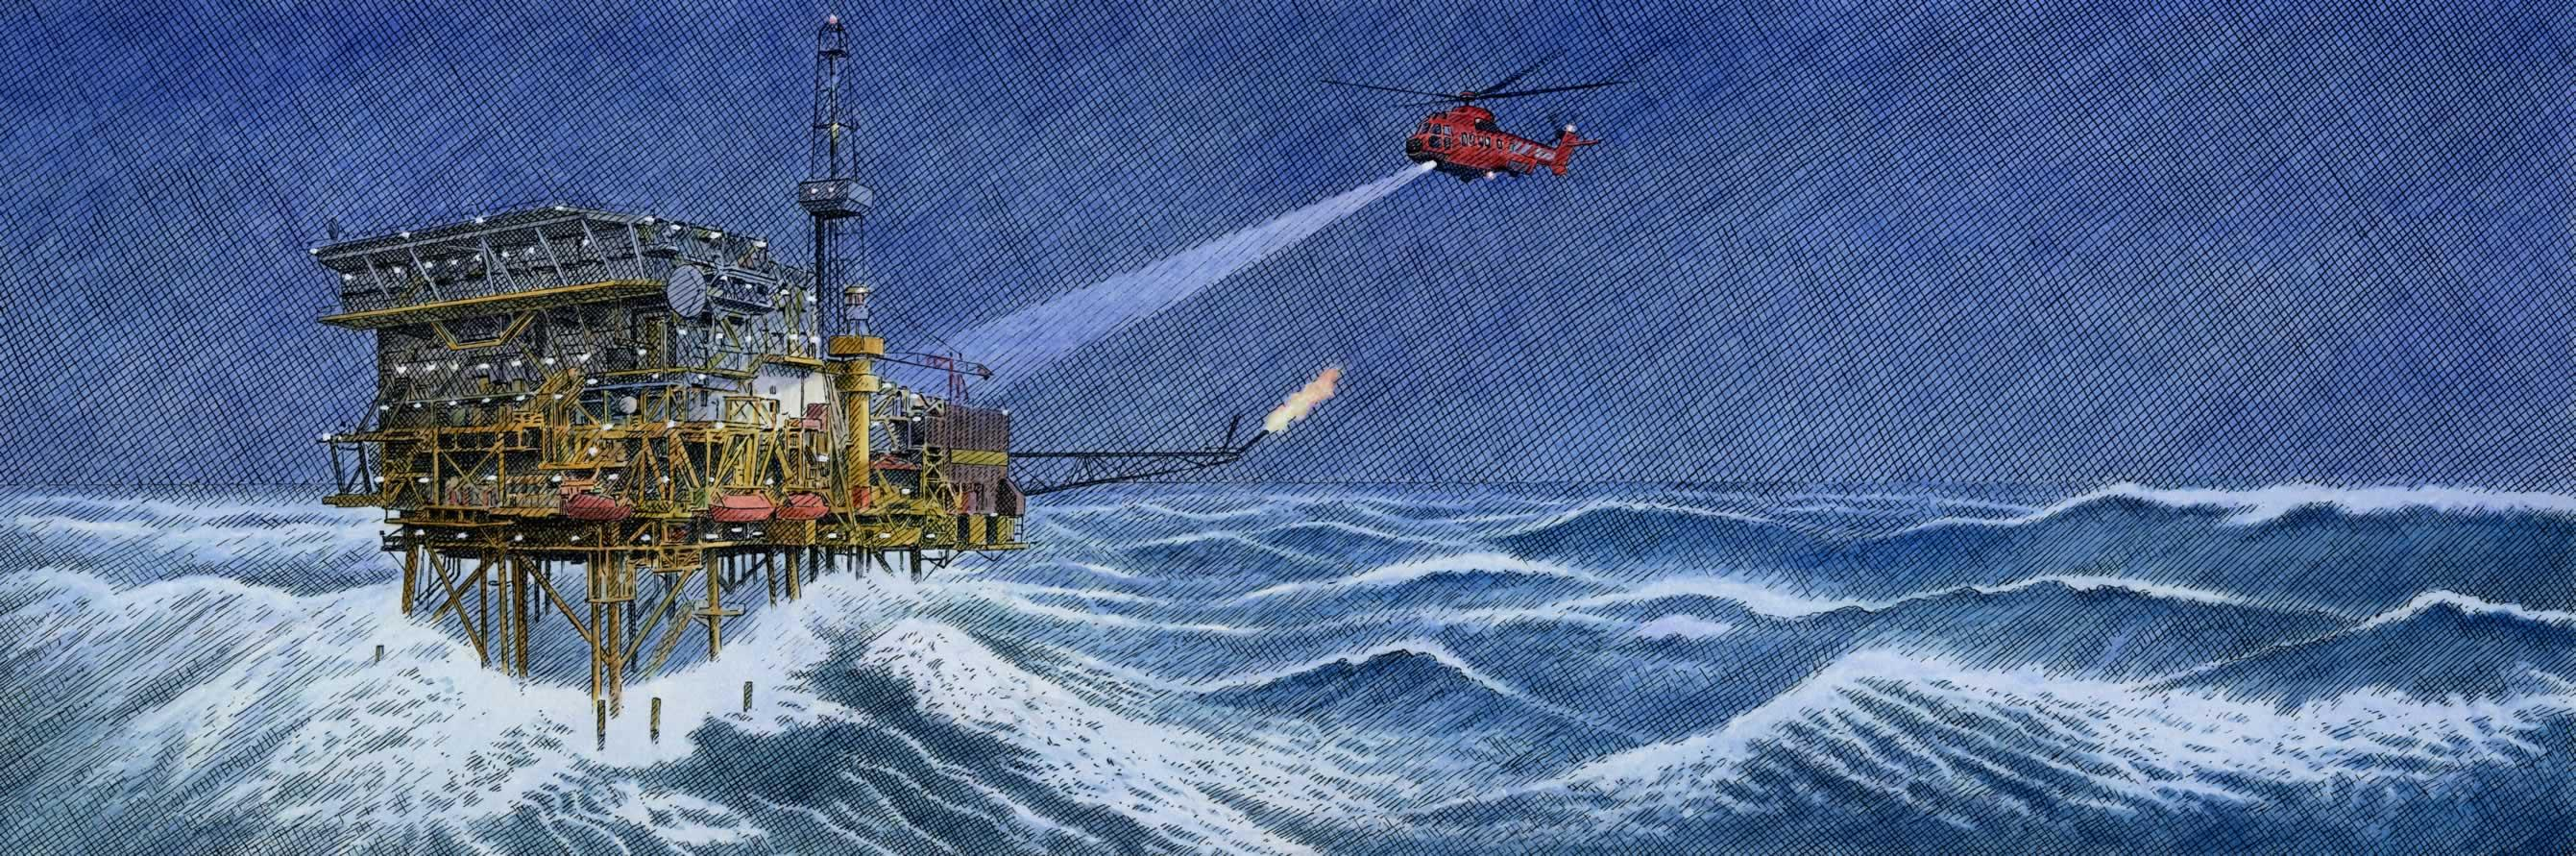 Storm at Sea-Andrew Hillier